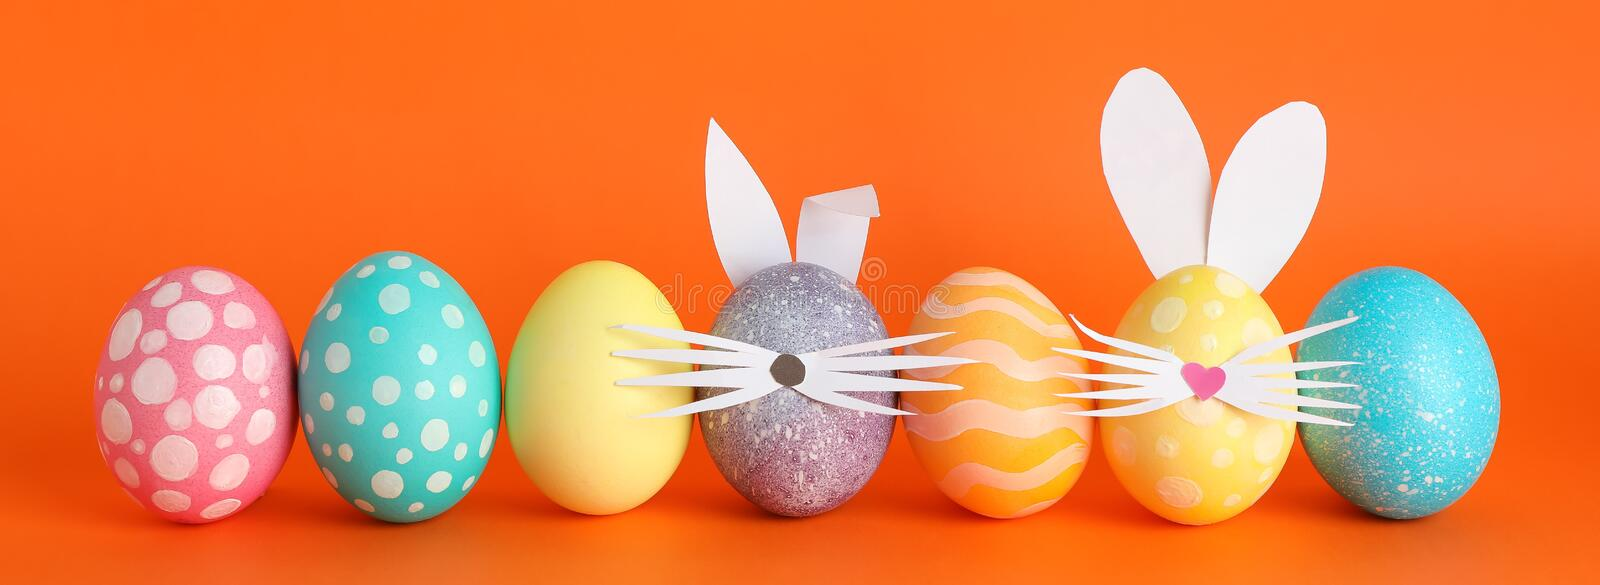 Decorated Easter eggs and cute bunny`s ears royalty free stock image